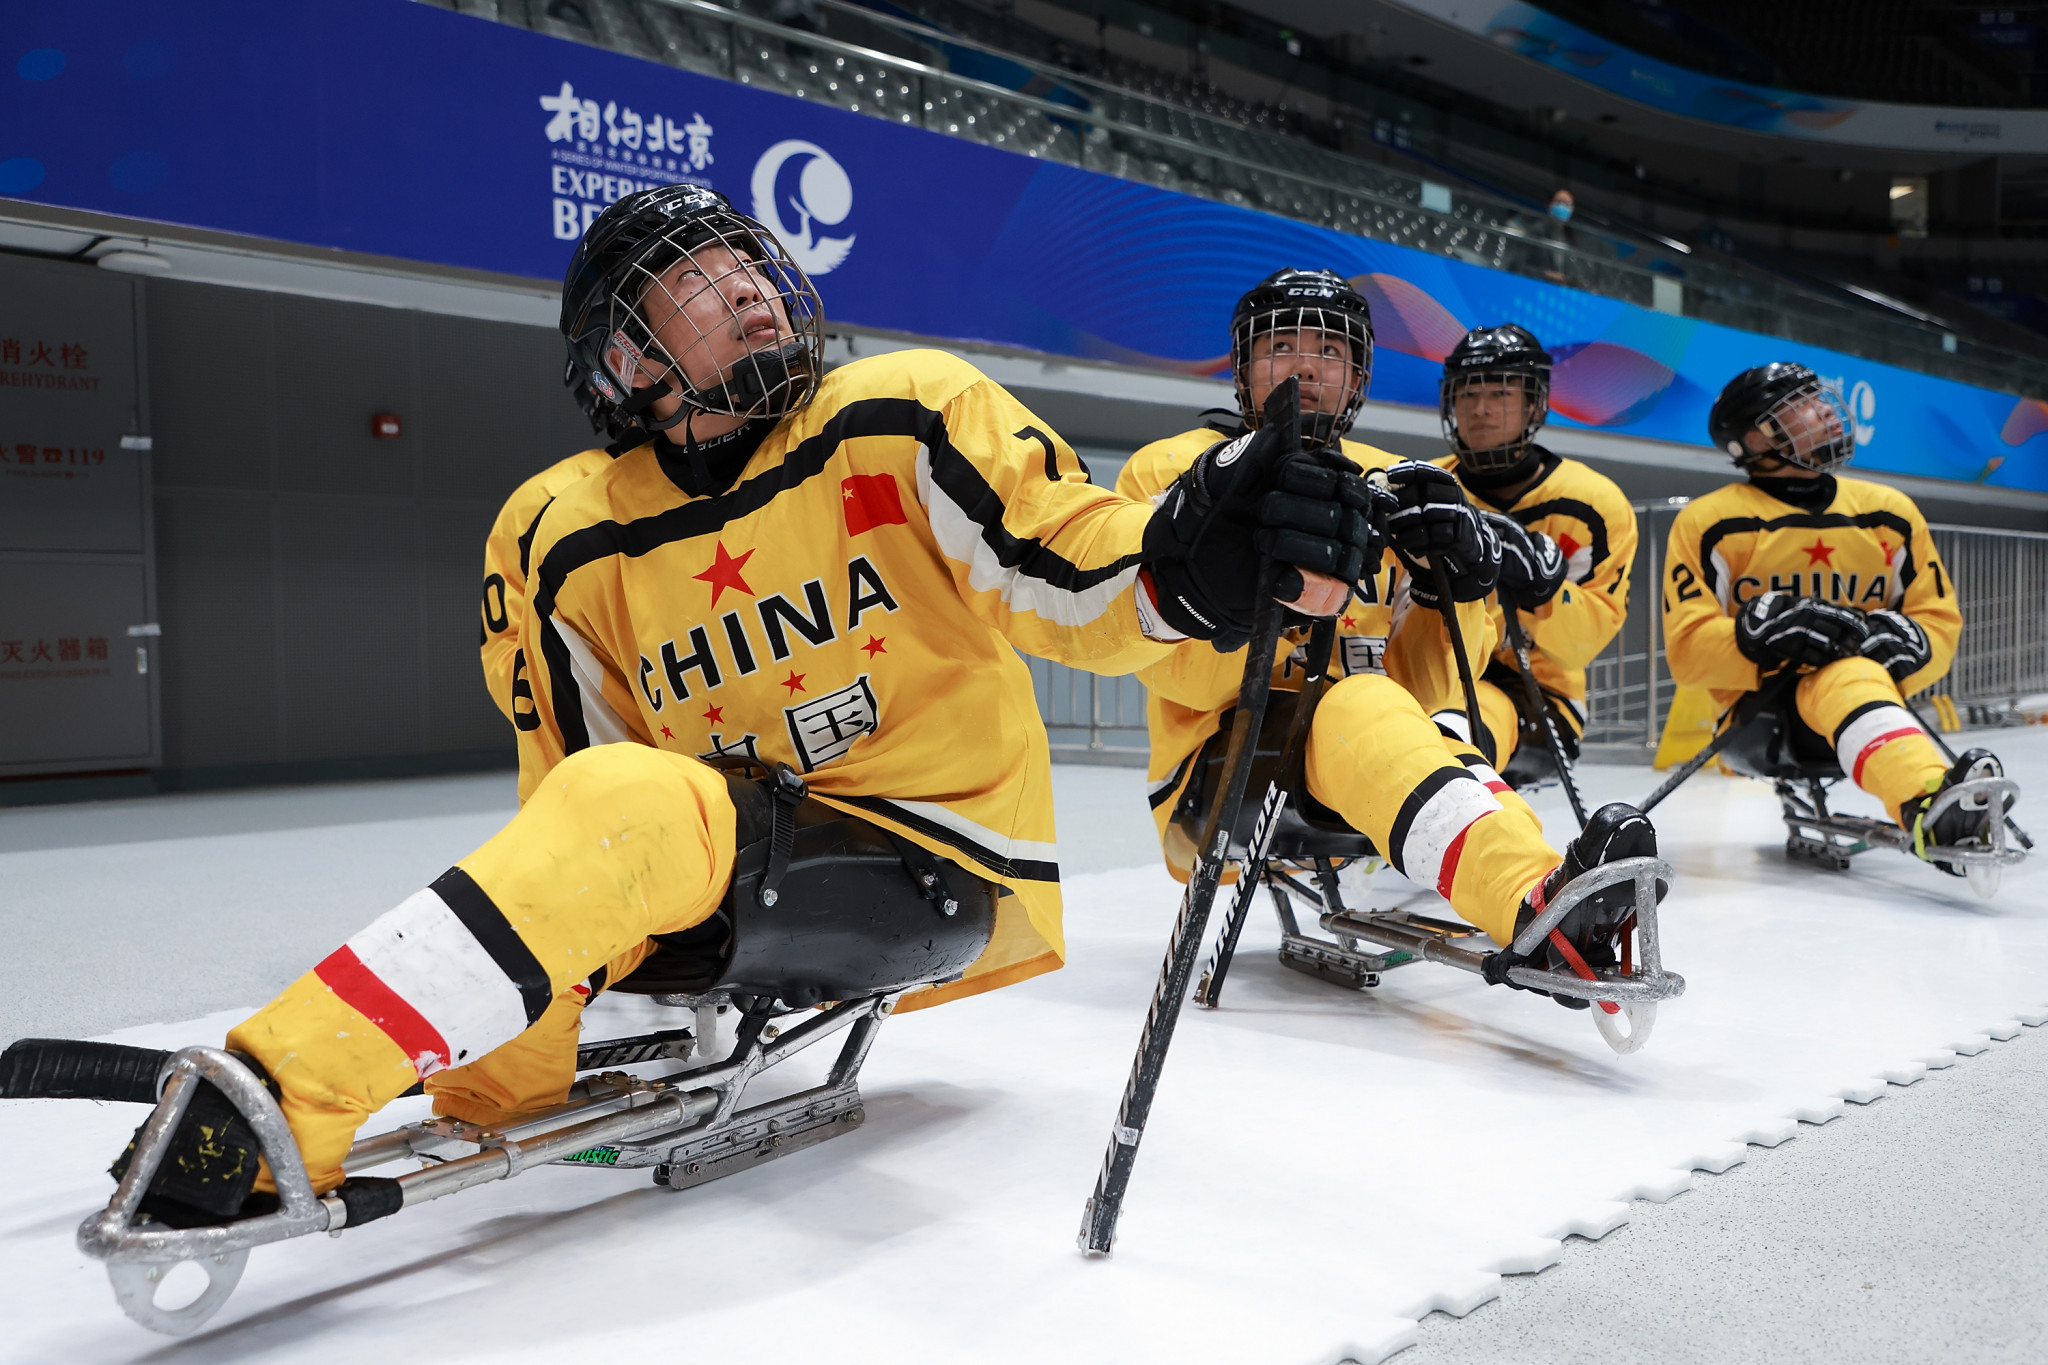 China beat hosts Sweden to stay undefeated at World Para Ice Hockey Championships B-Pool